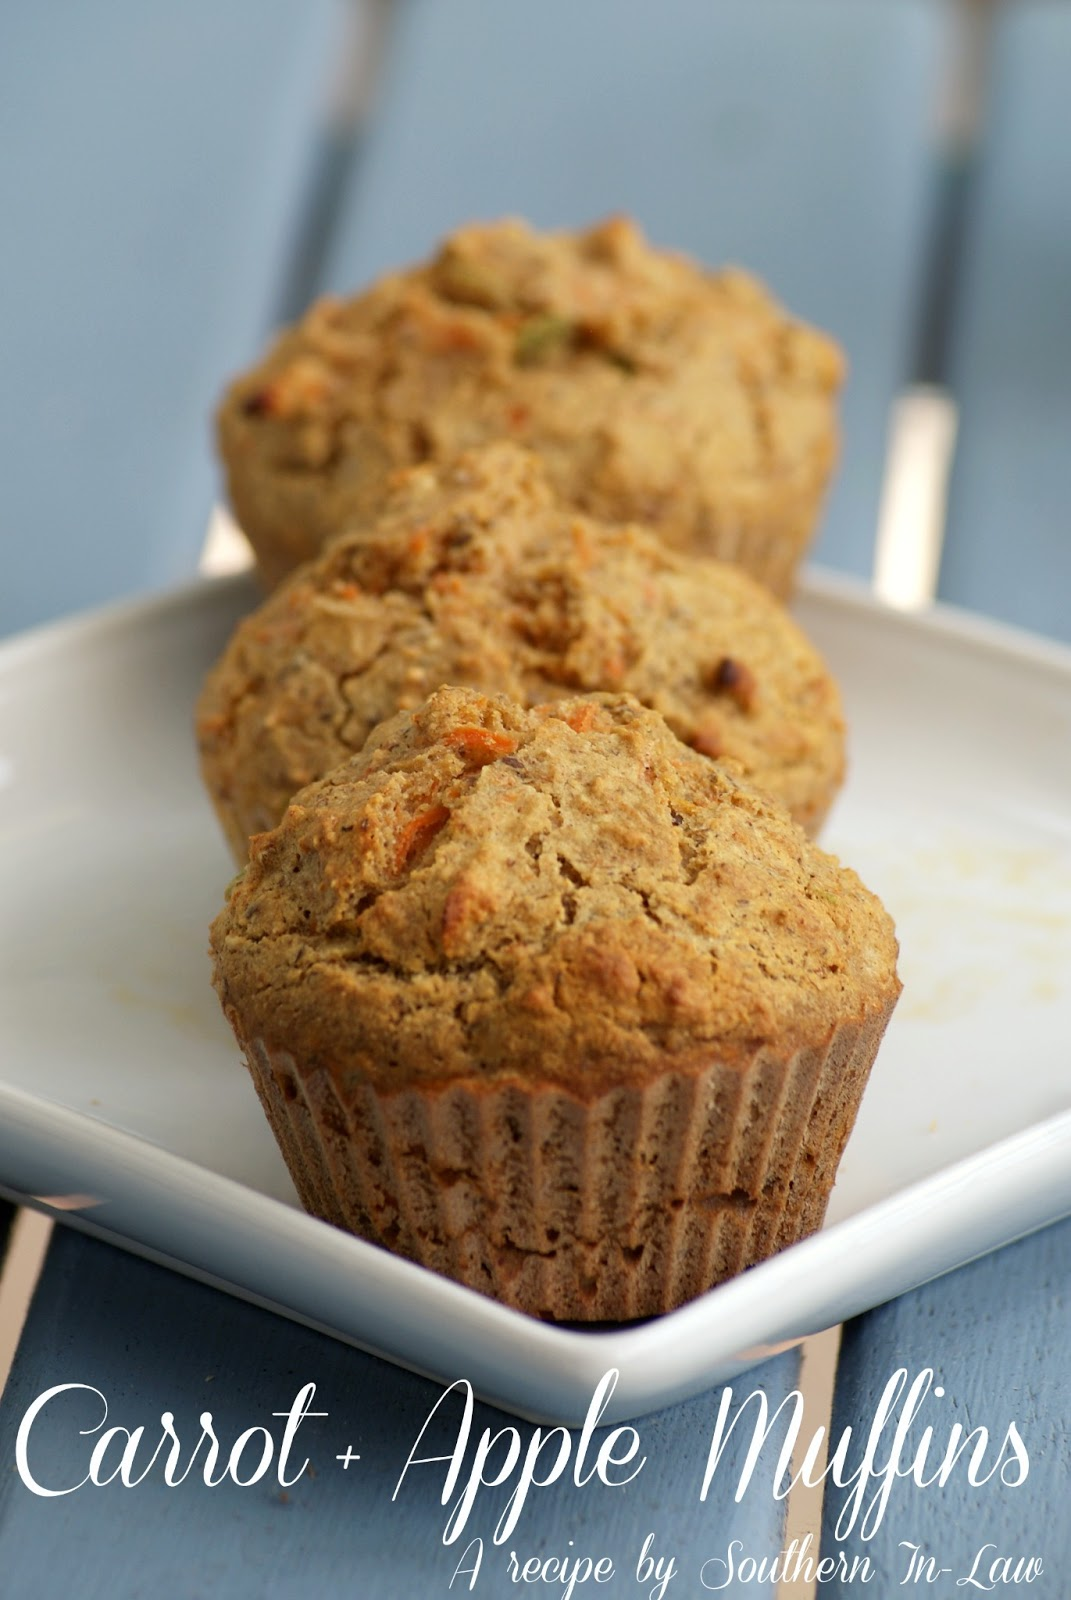 Low Fat Carrot and Apple Muffin Recipe